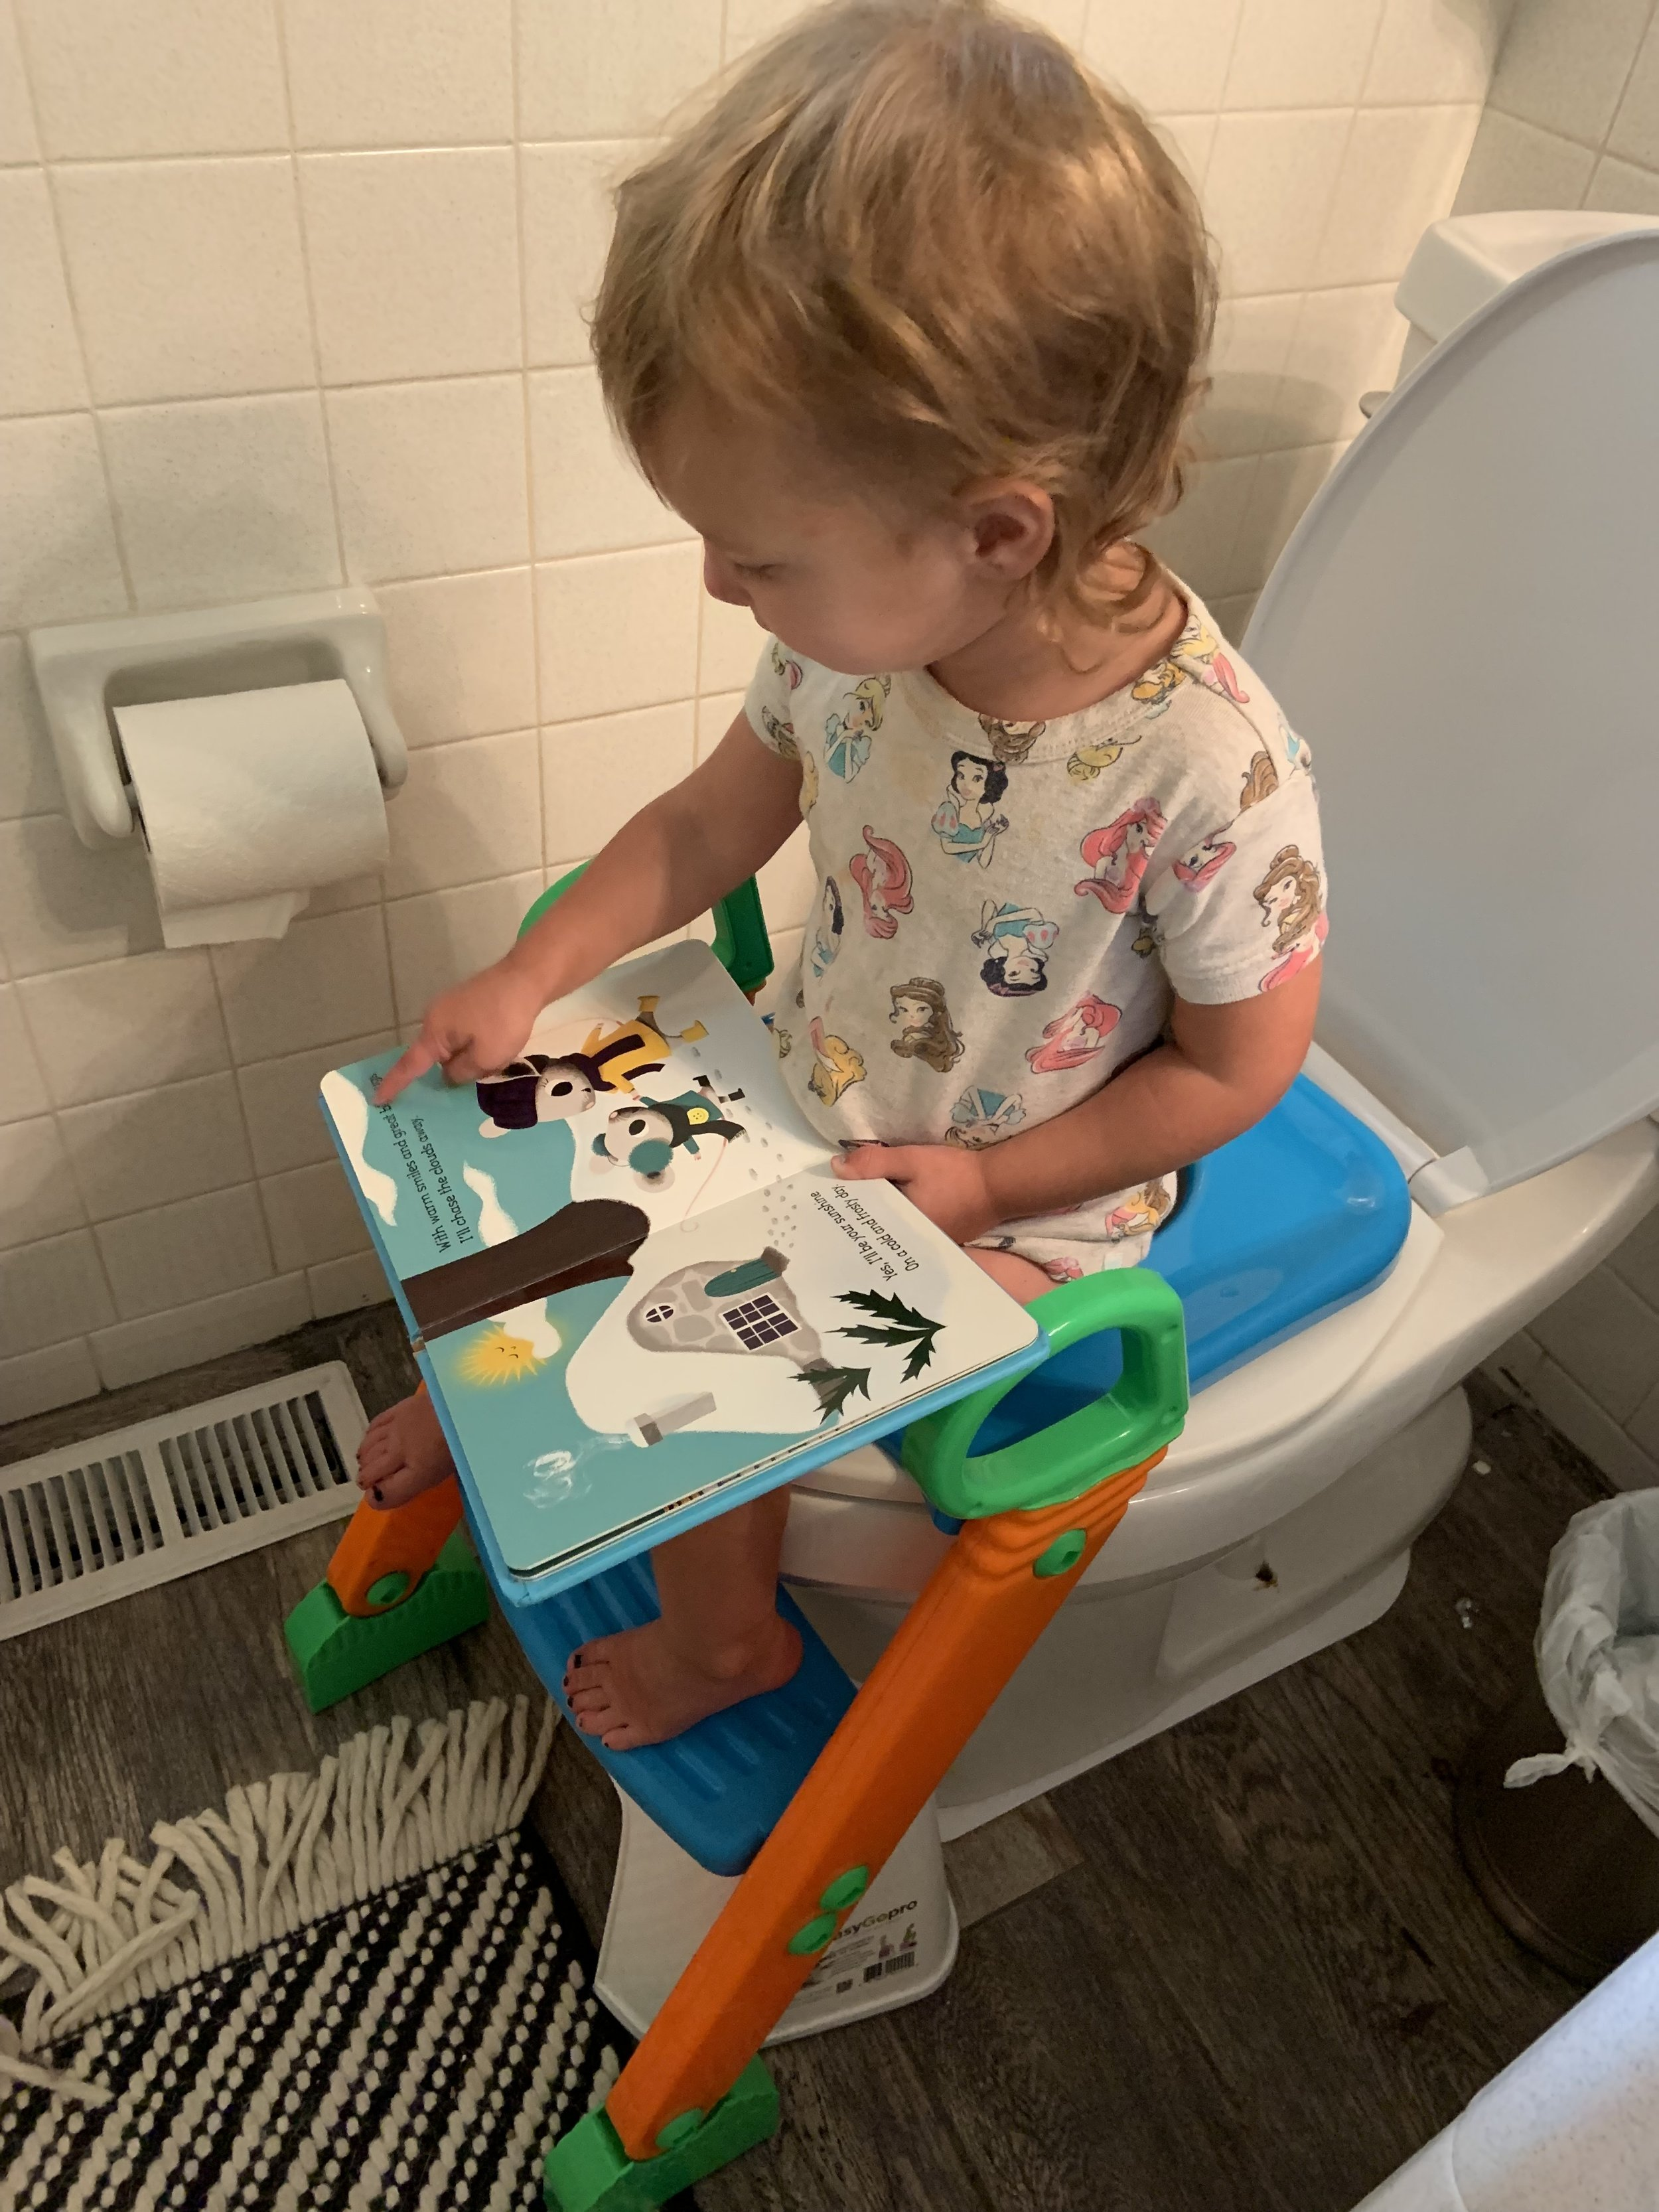 We set up a reading basket by the toilet so Dallas could read during her training. This helped alleviate anxiety - especially with going #2.